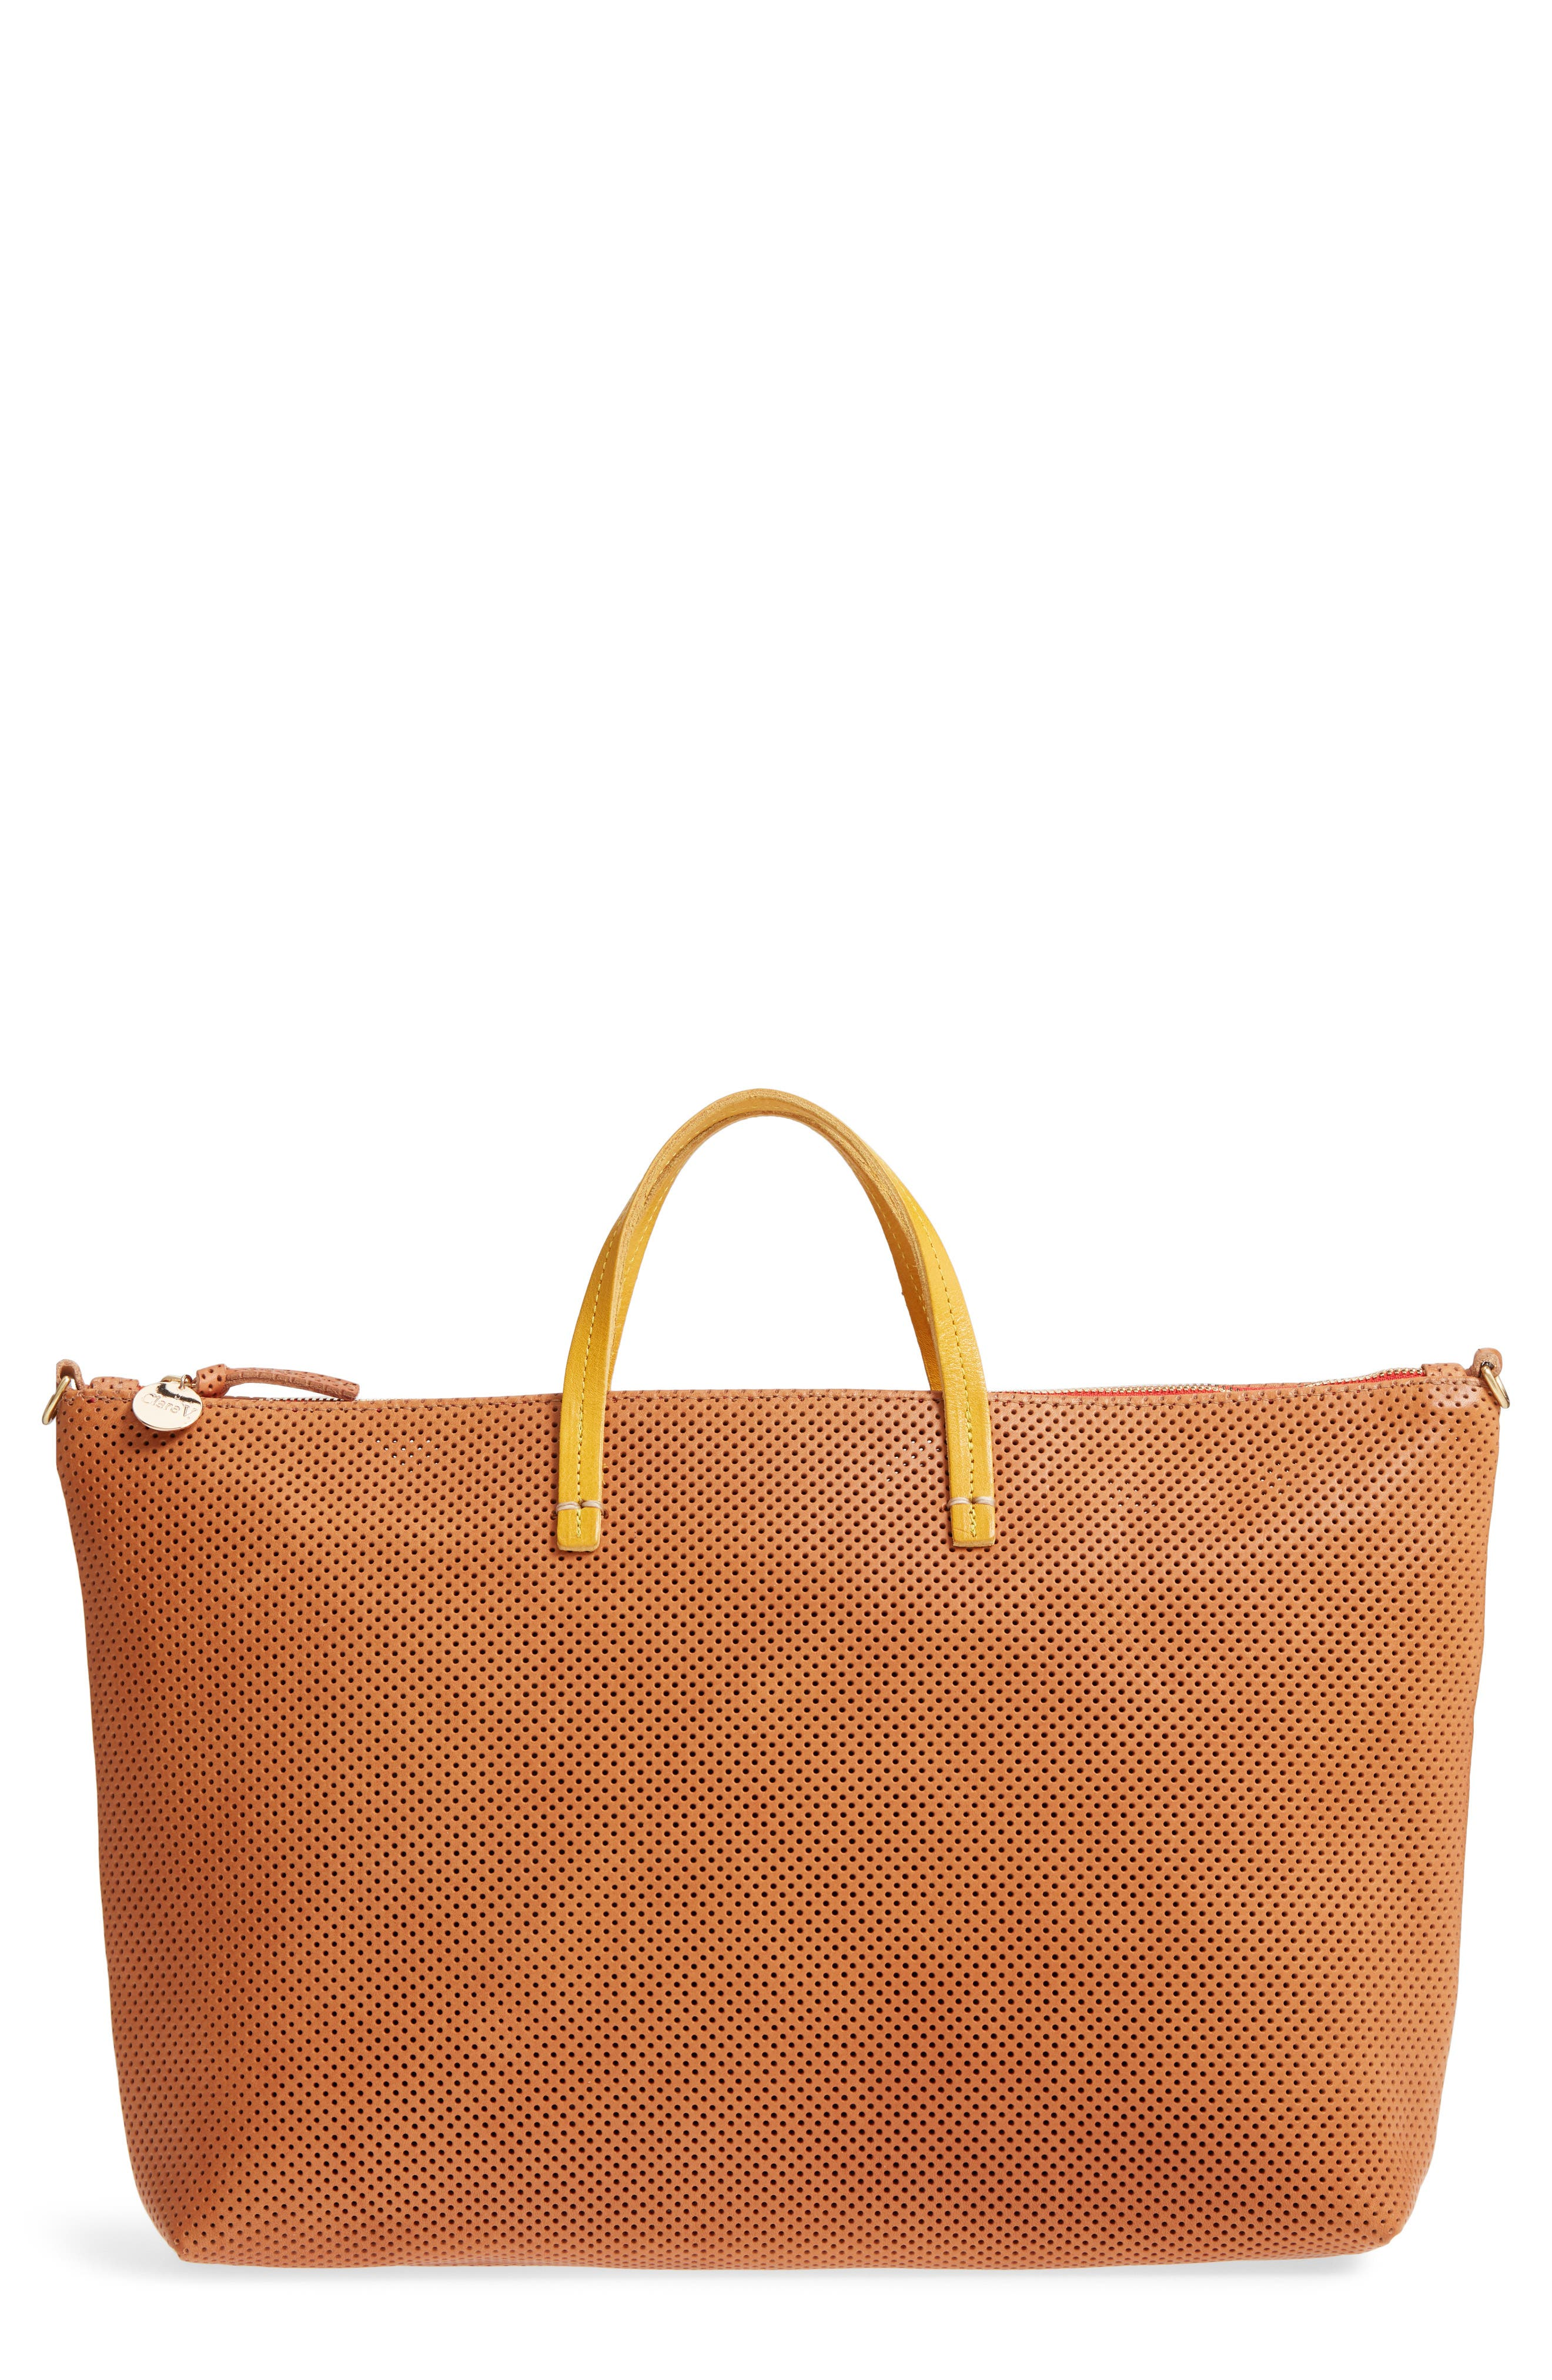 Perforated Leather Tote,                         Main,                         color, Cuoio Perf